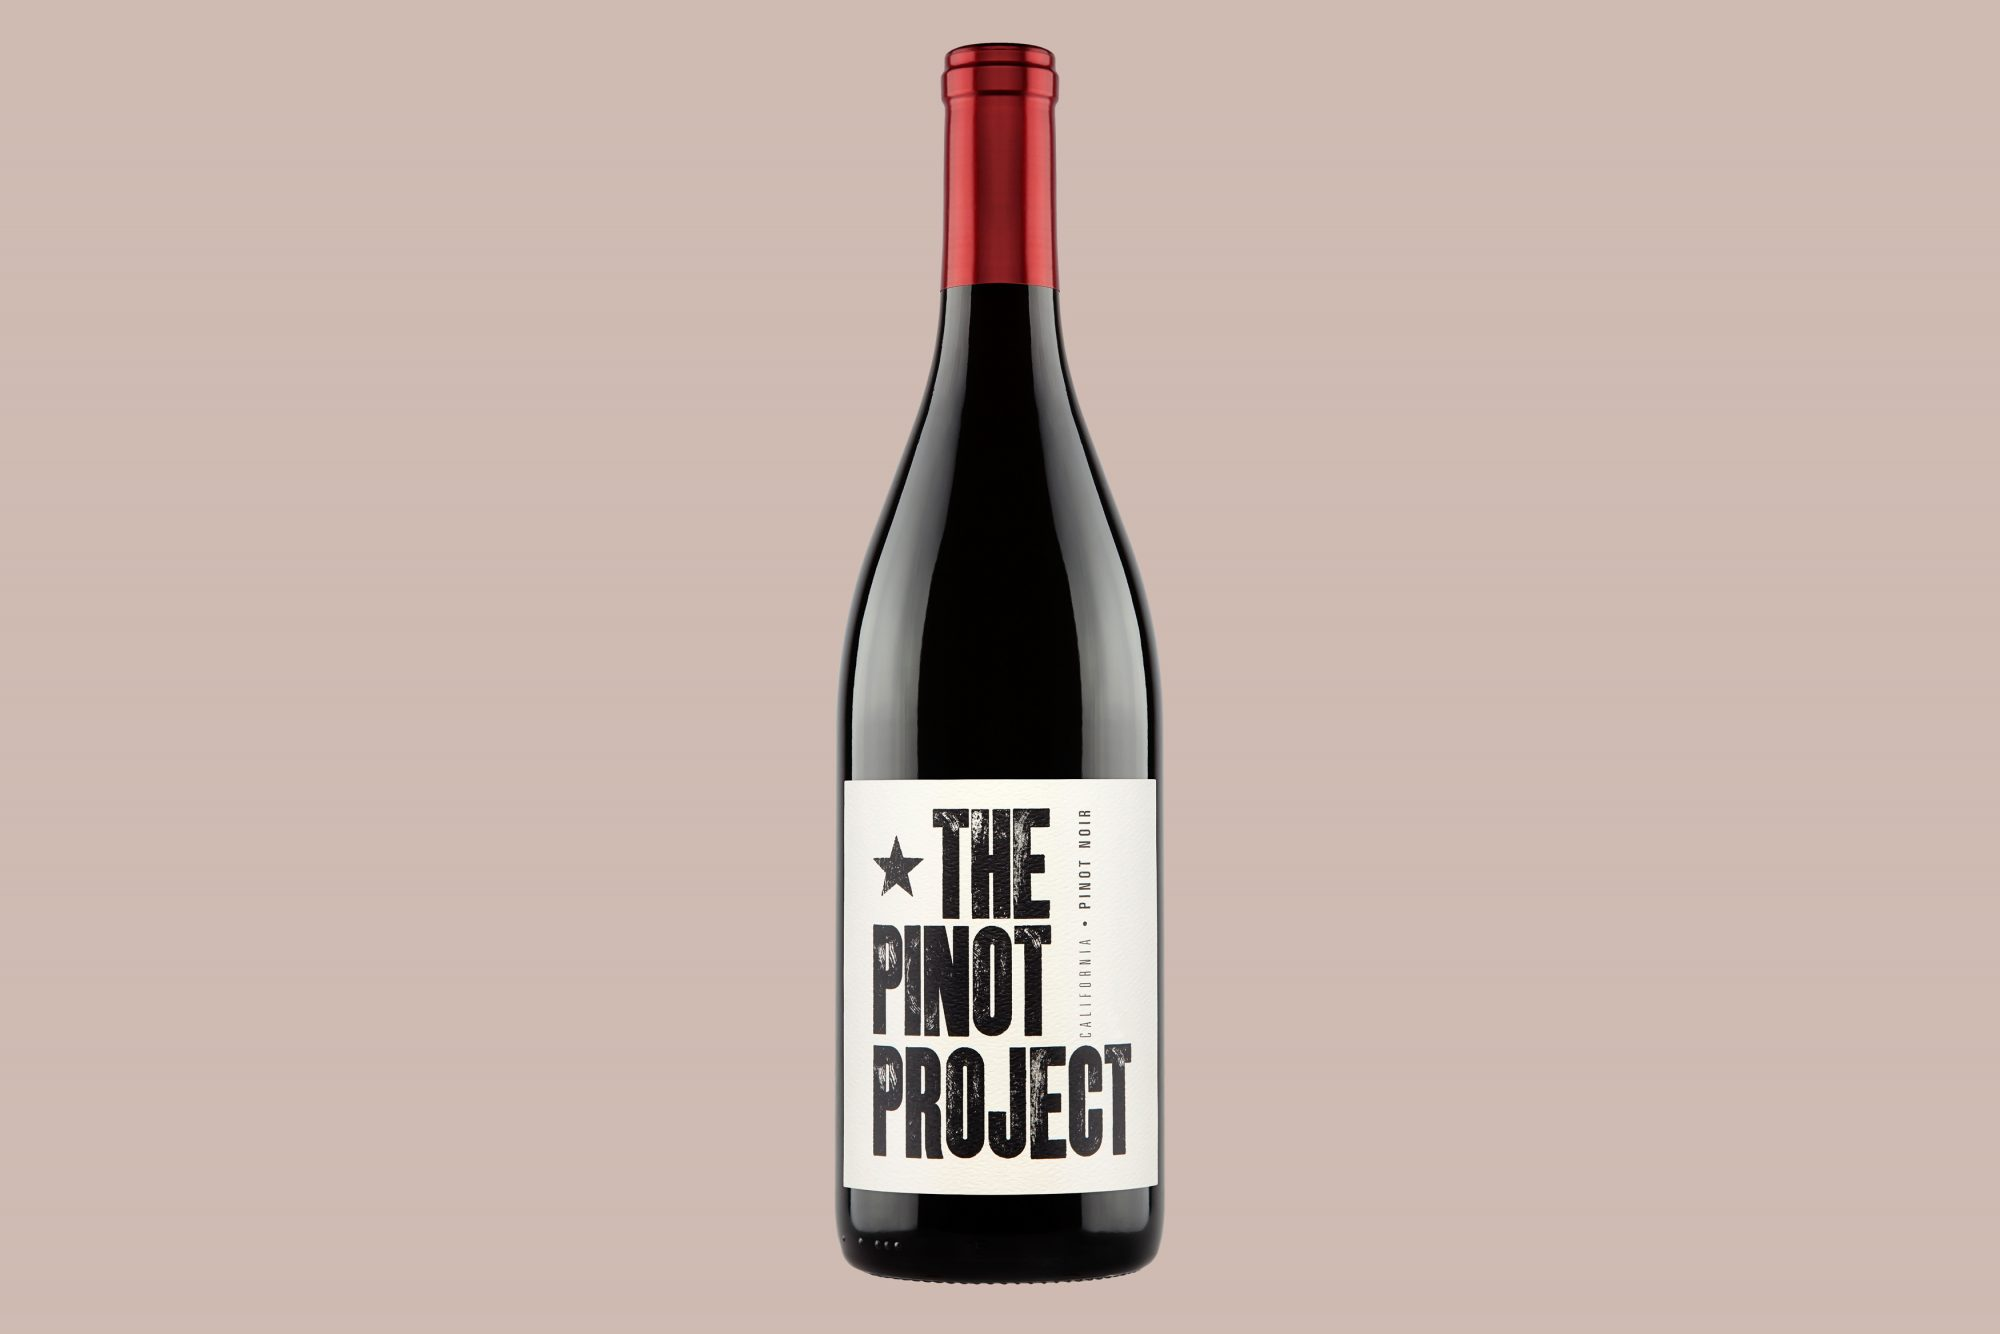 The Pinot Project red wine bottle